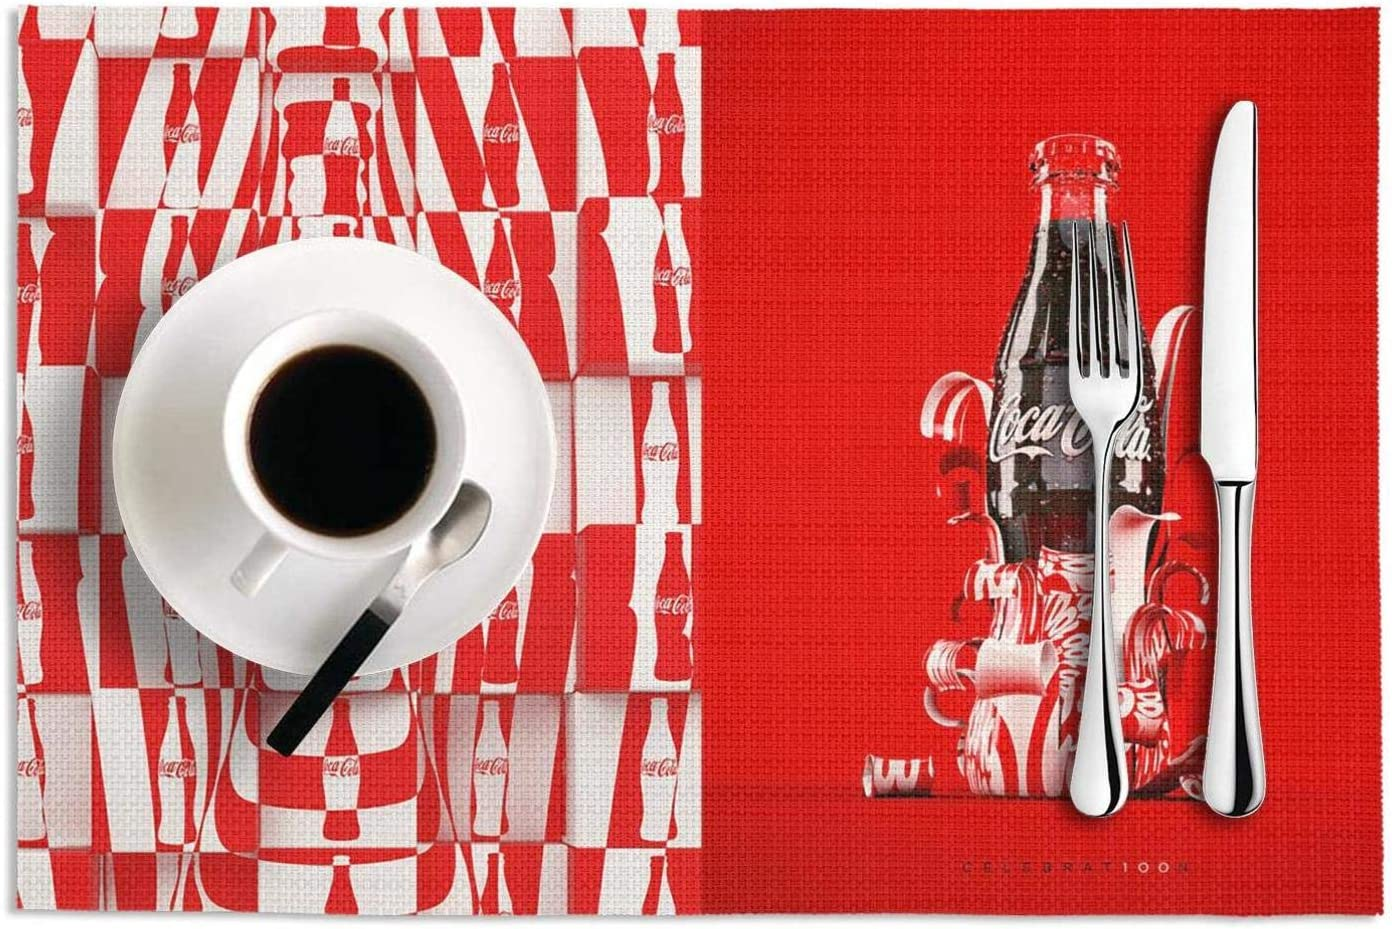 Easy To Clean Placemats Heat-Resistant Placemats Stain Resistant Anti-Skid Washable 25-Creative-CocaCola-Ads- PVC Table Mats,Set Of 2